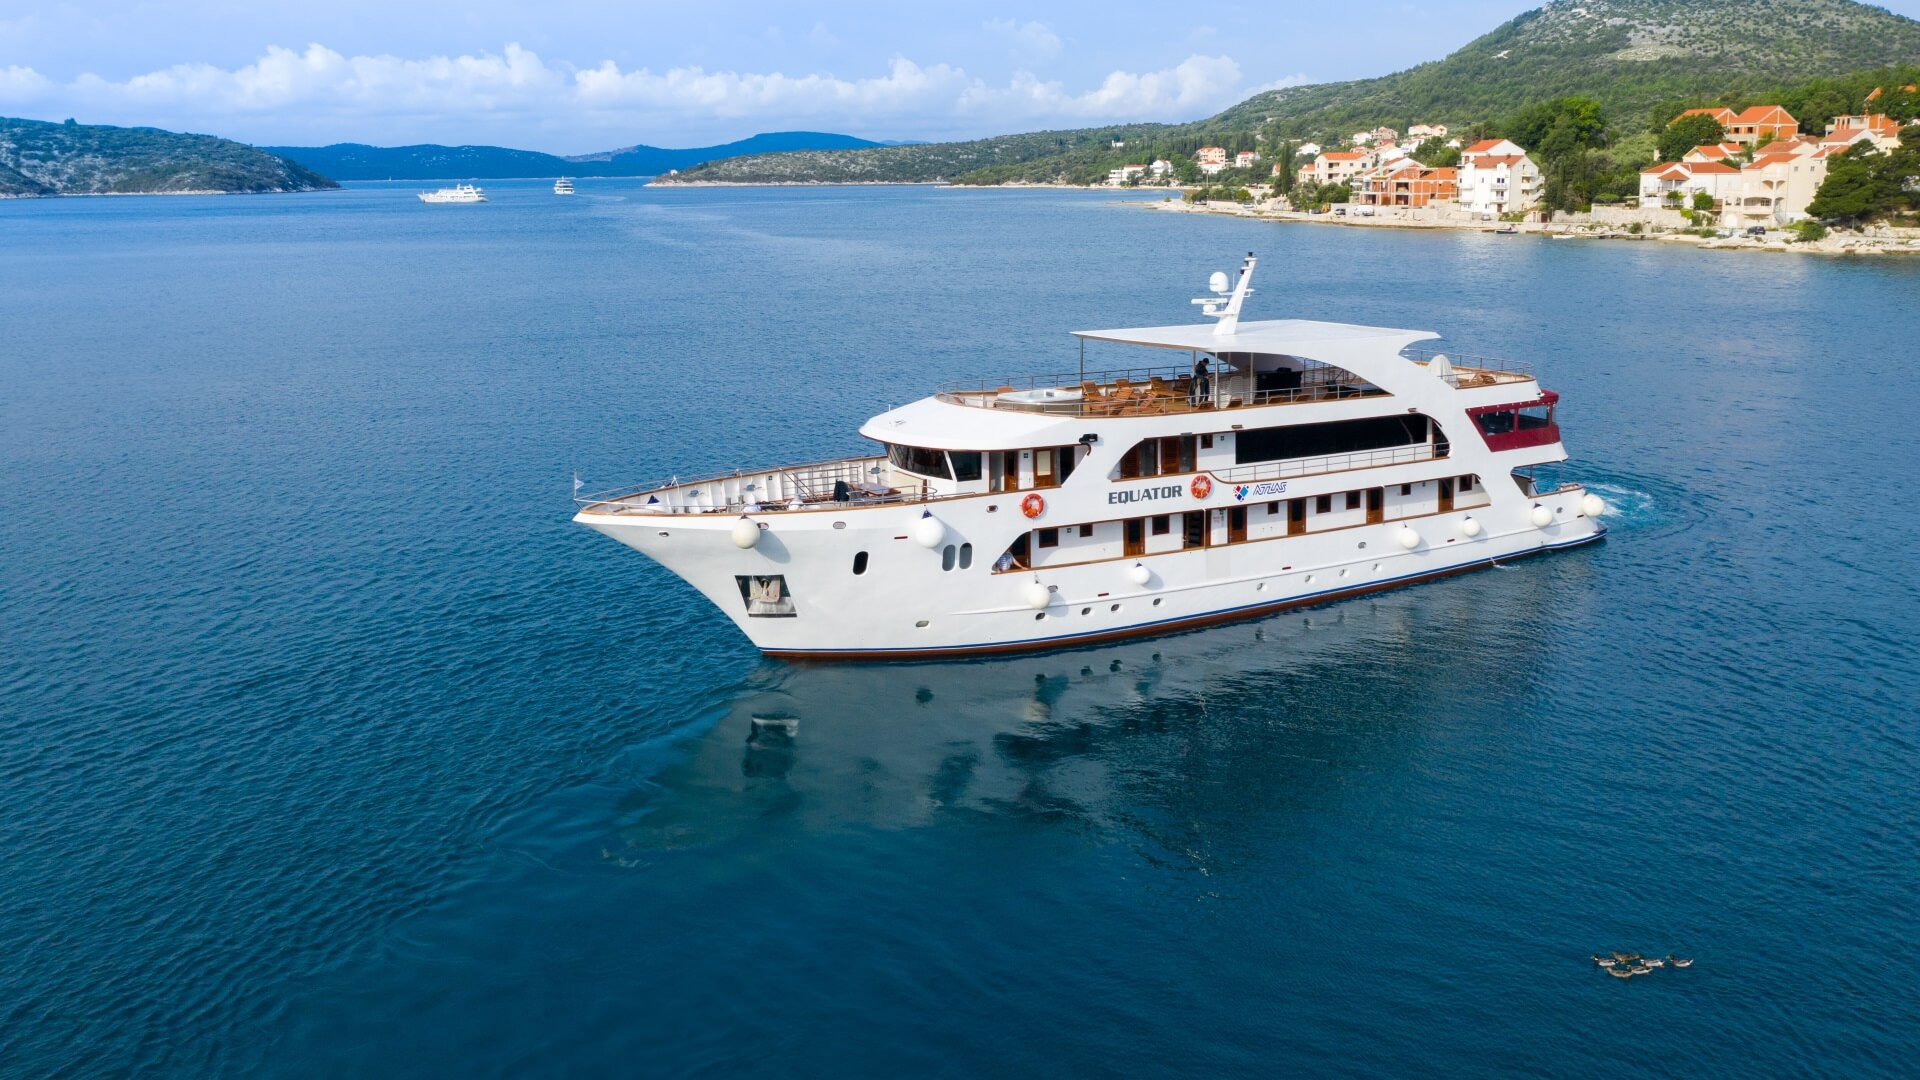 Equator | Croatia Holidays Croatia Cruise